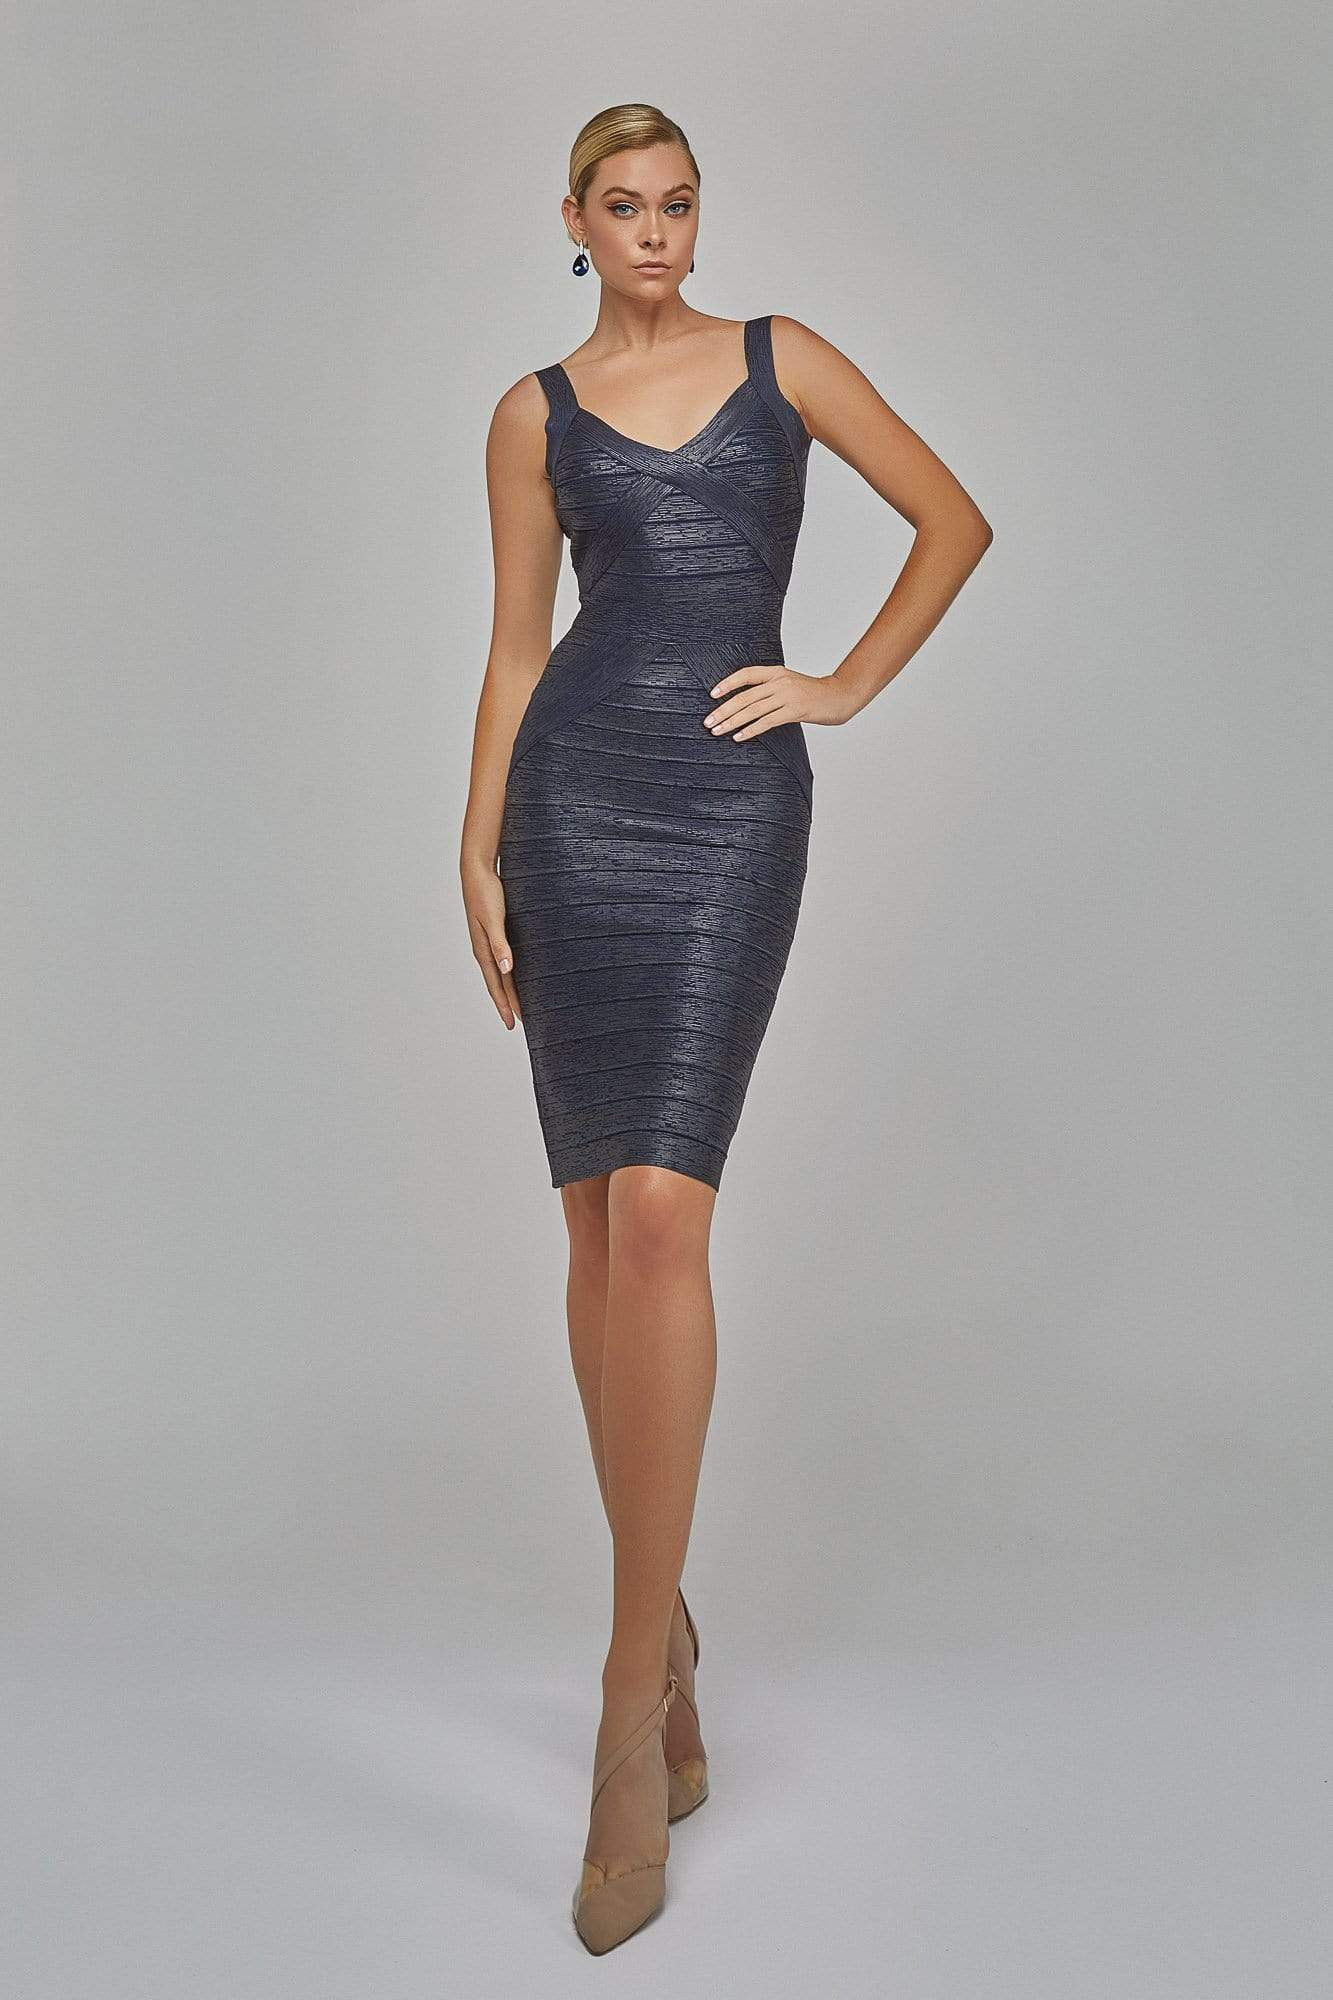 Terani Couture - 1921C0011 Stretch Metallic Knit Bandage Dress In Navy